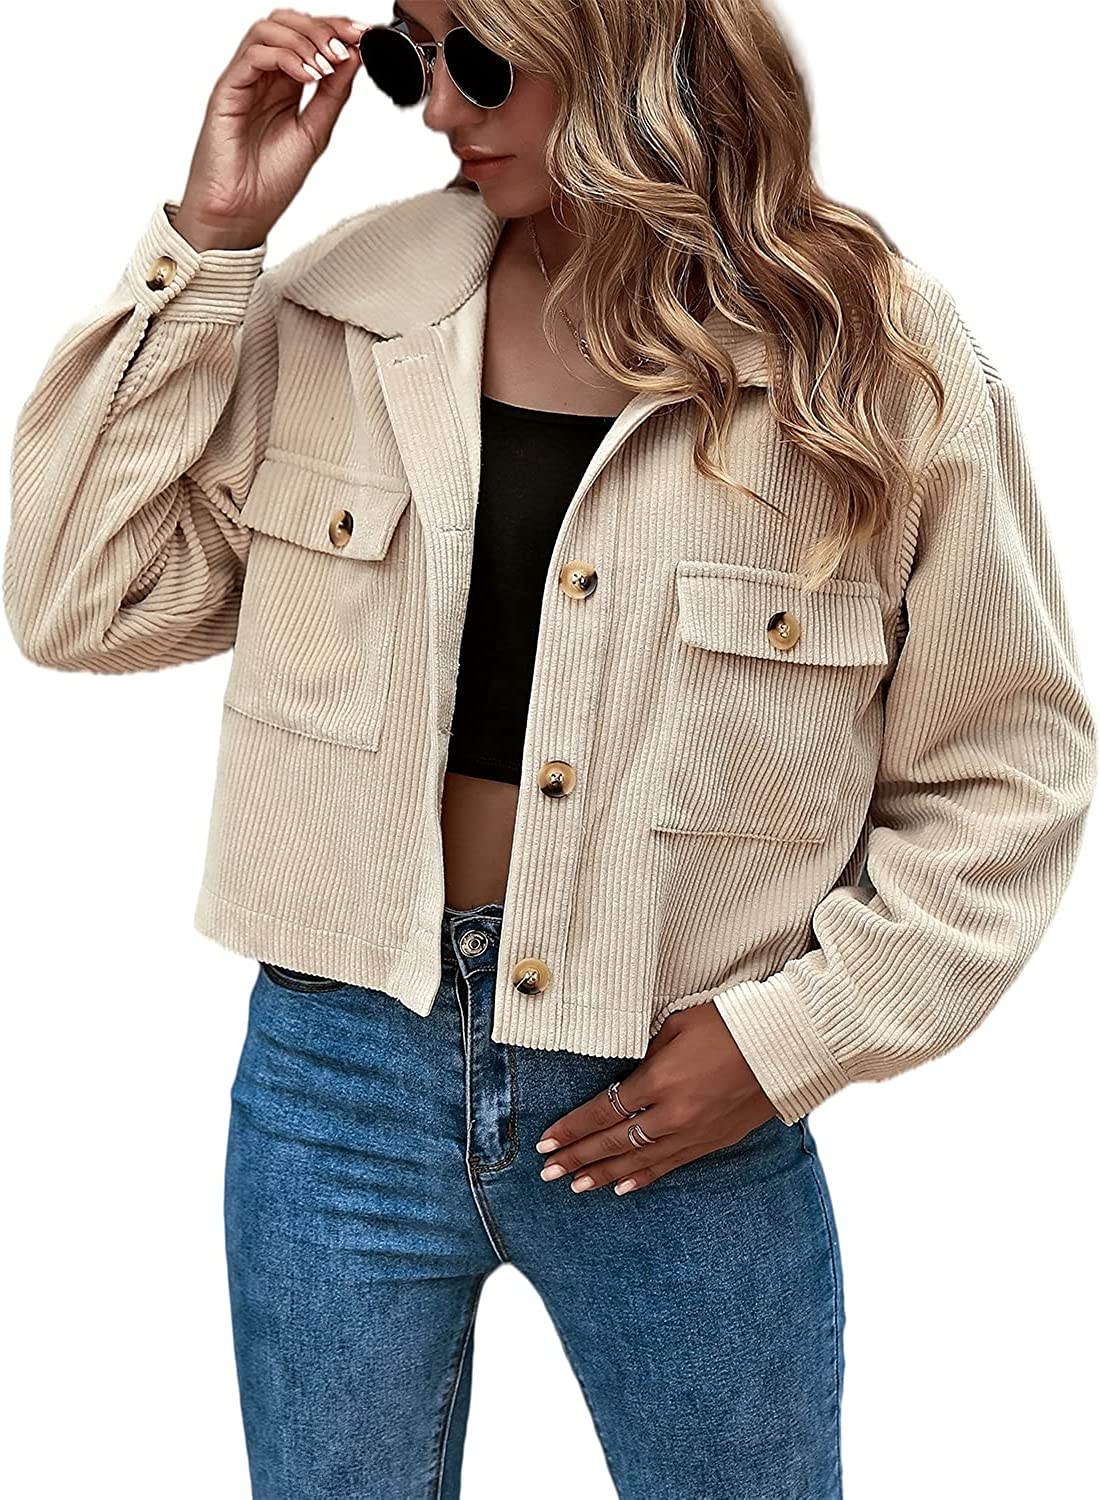 Eteviolet Women's Casual Cropped Corduroy Jackets Button Down Long Sleeve Shirts Jacket With Pockets